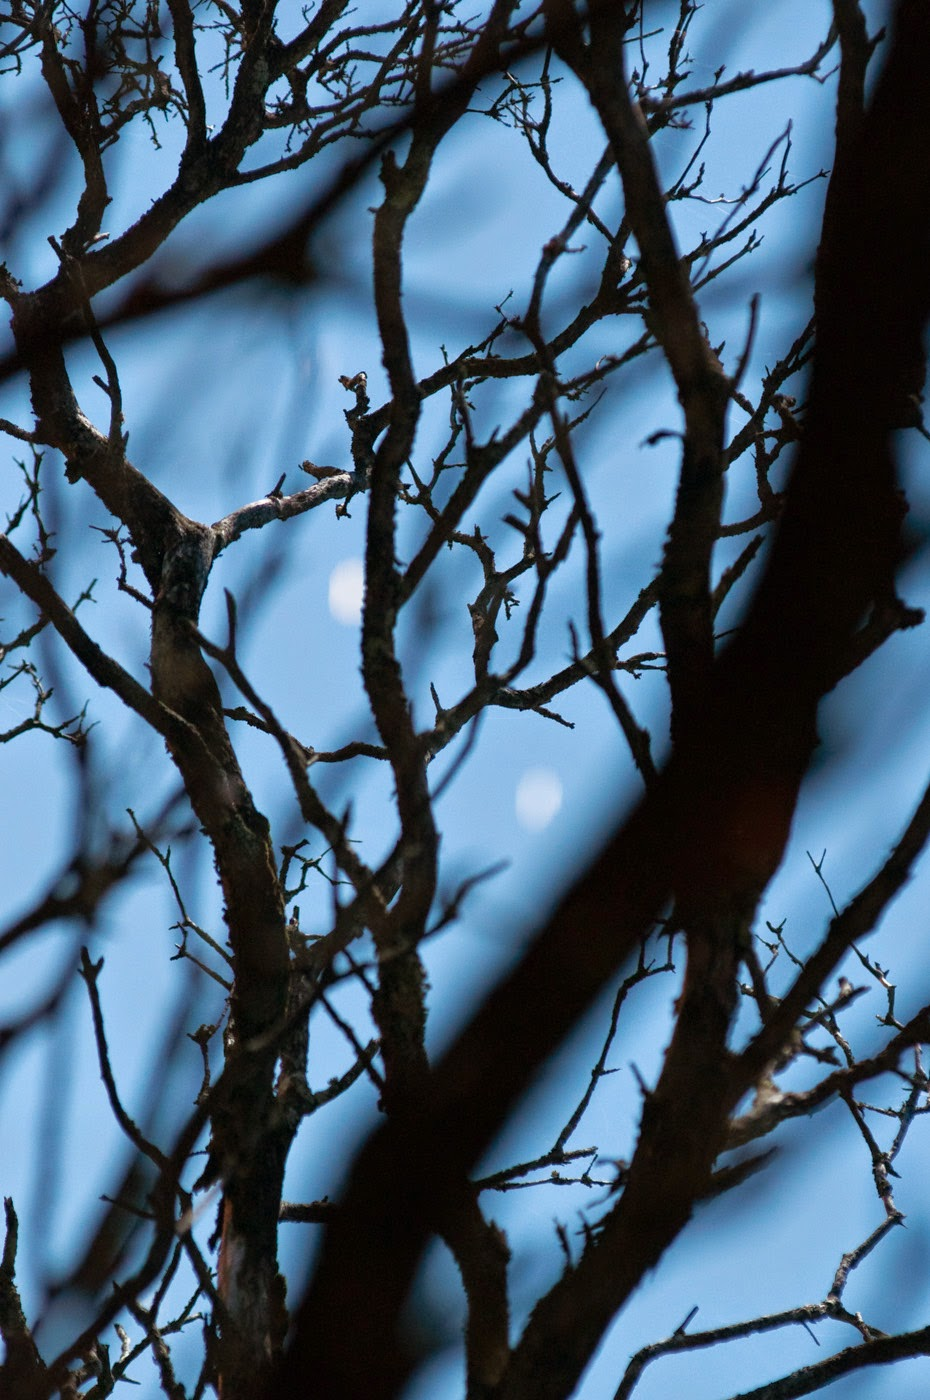 Tim Macauley, anglesea, Victoria, Australia, Australian, photographic artist, the light monkey collective, night garden, abstract, abstraction, moonah tree, coastal, coastal moonah woodlands, silhouttes, moonlit, graphical, graphic, atmospheric